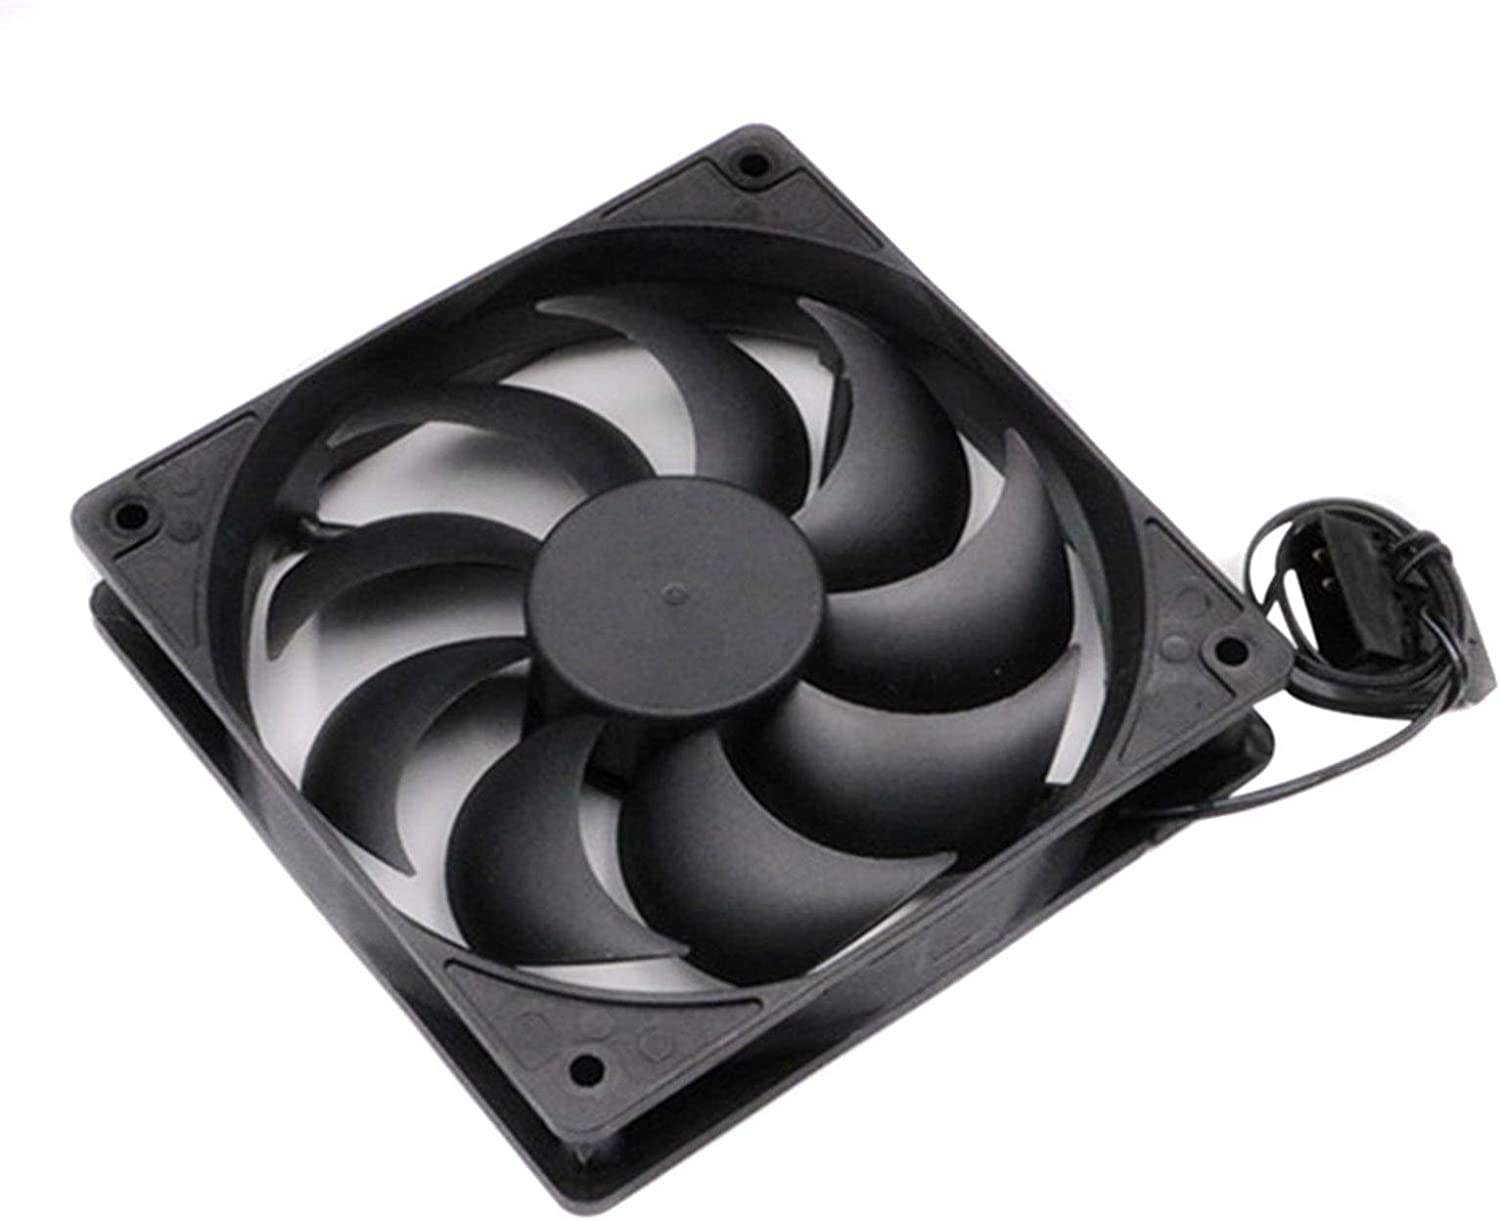 Assletes Computer Cooling Fan, Mining Rack Fan, Temperature-Controlled,for Cabinet Water-Cooled Computer, Mining Machine Cabinet Chassis Server Workstation Cooling